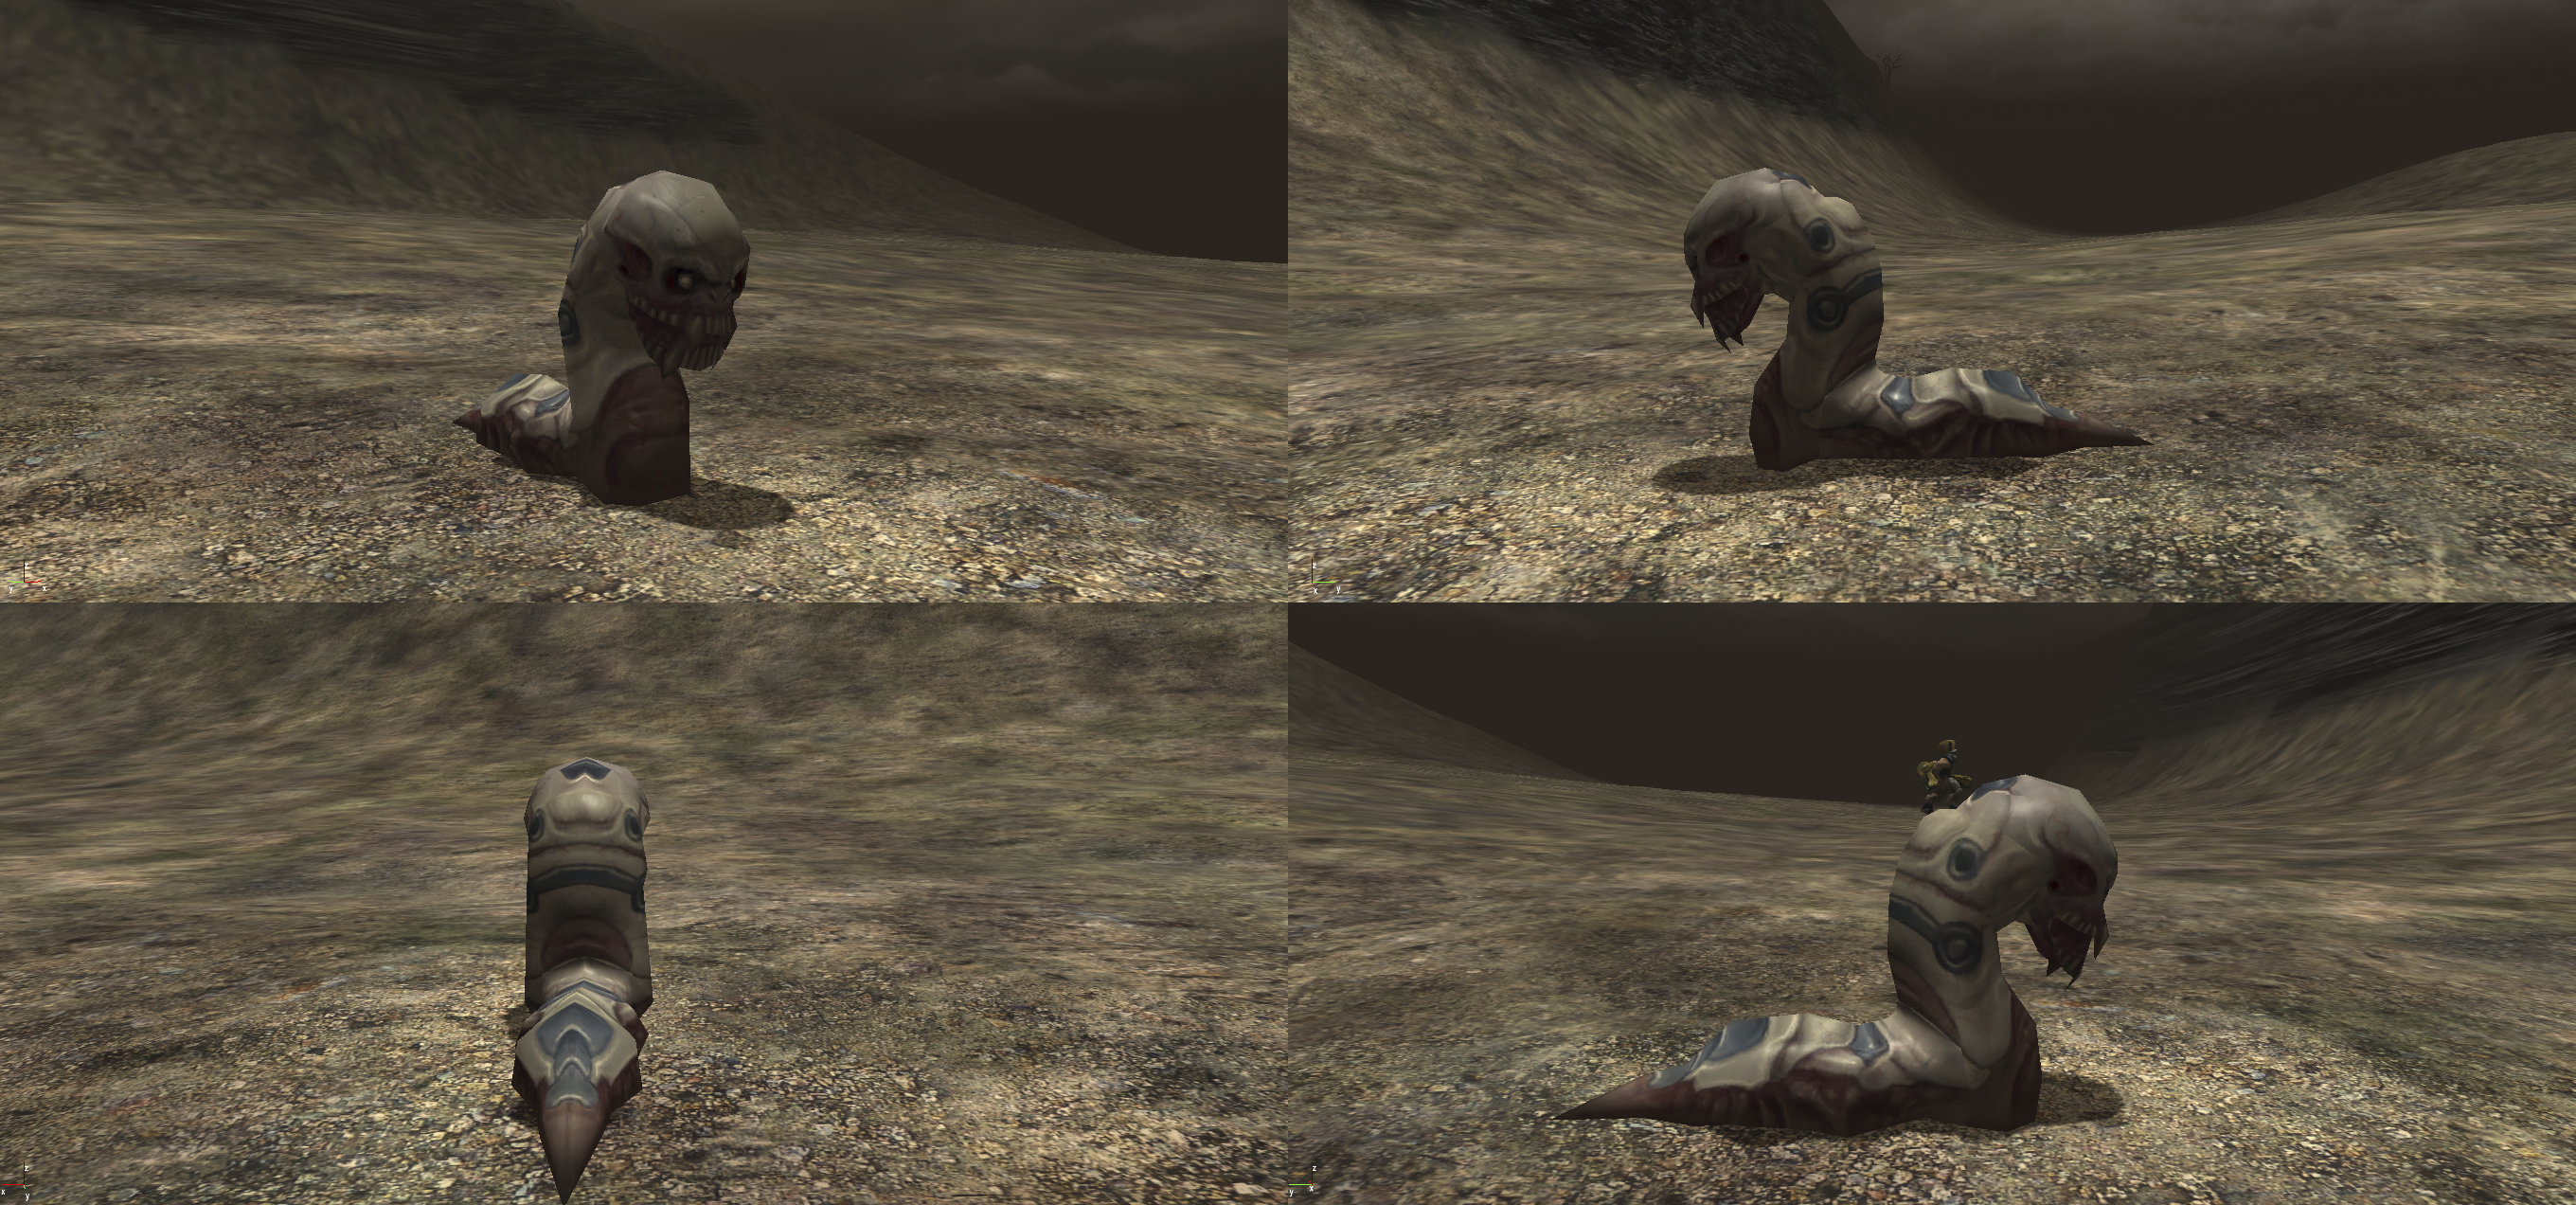 How Mutant Slug Really Looked Image Brp Beta Restoration Project Mod For Far Cry Mod Db